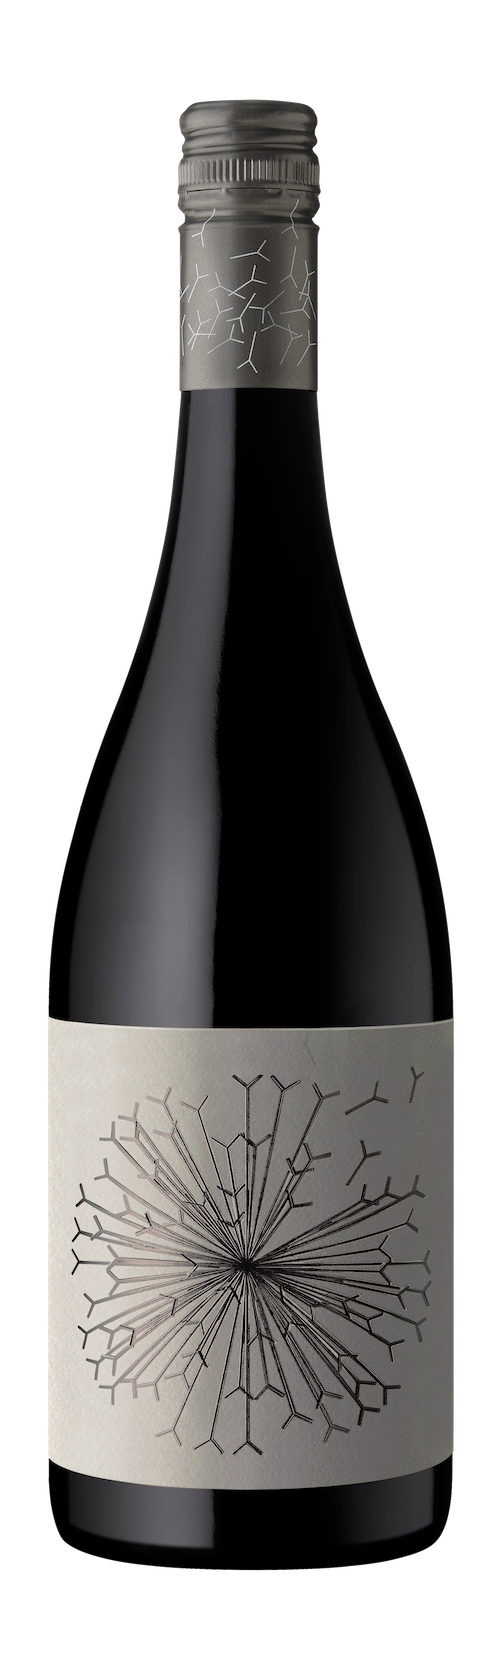 Lion's Tooth of McLaren Vale Shiraz Riesling 2019